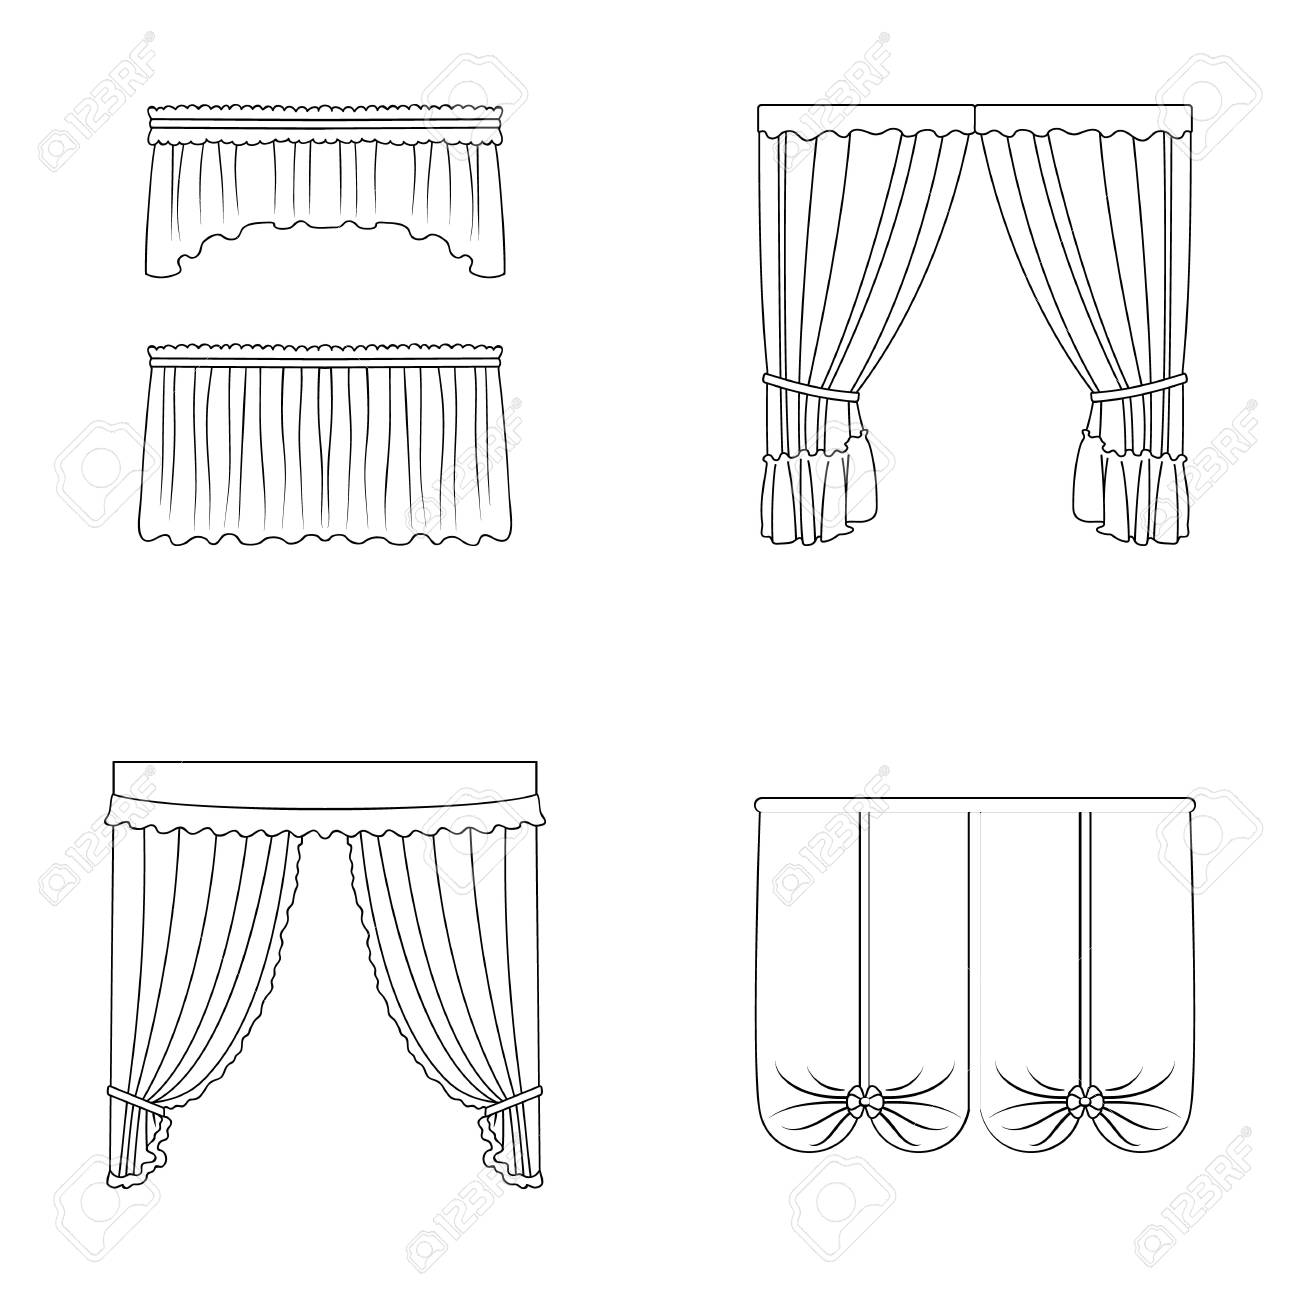 Different Types Of Window Curtains Curtains Set Collection Icons Royalty Free Cliparts Vectors And Stock Illustration Image 81365941